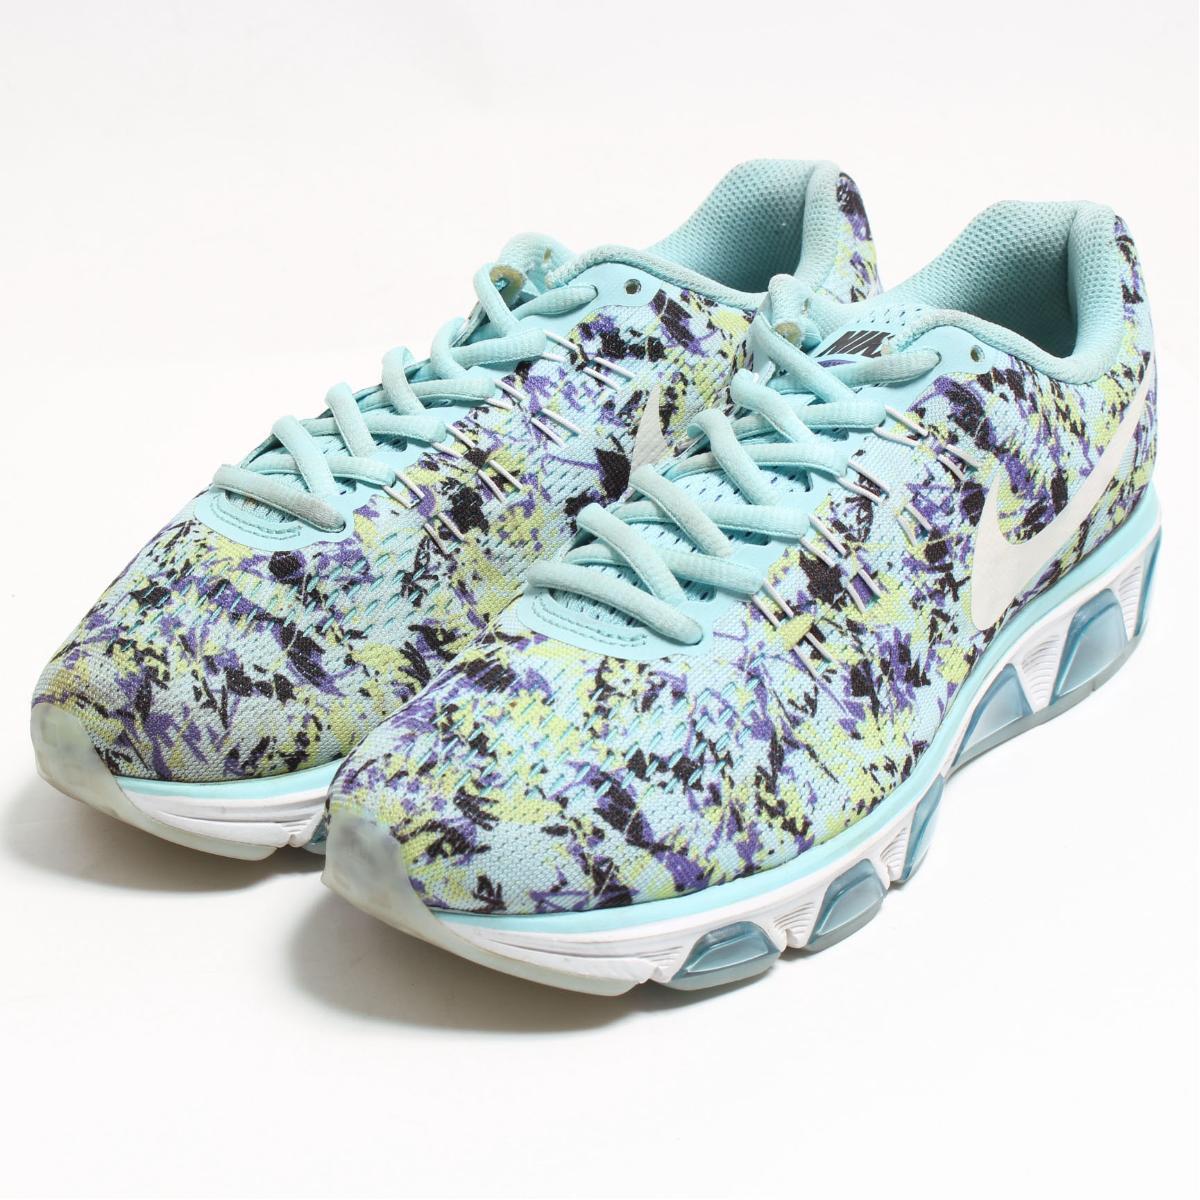 premium selection e9967 b5371 Nike NIKE Wmns Air Max Tailwind 8 sneakers US8 Lady's 25.0cm /bon5503